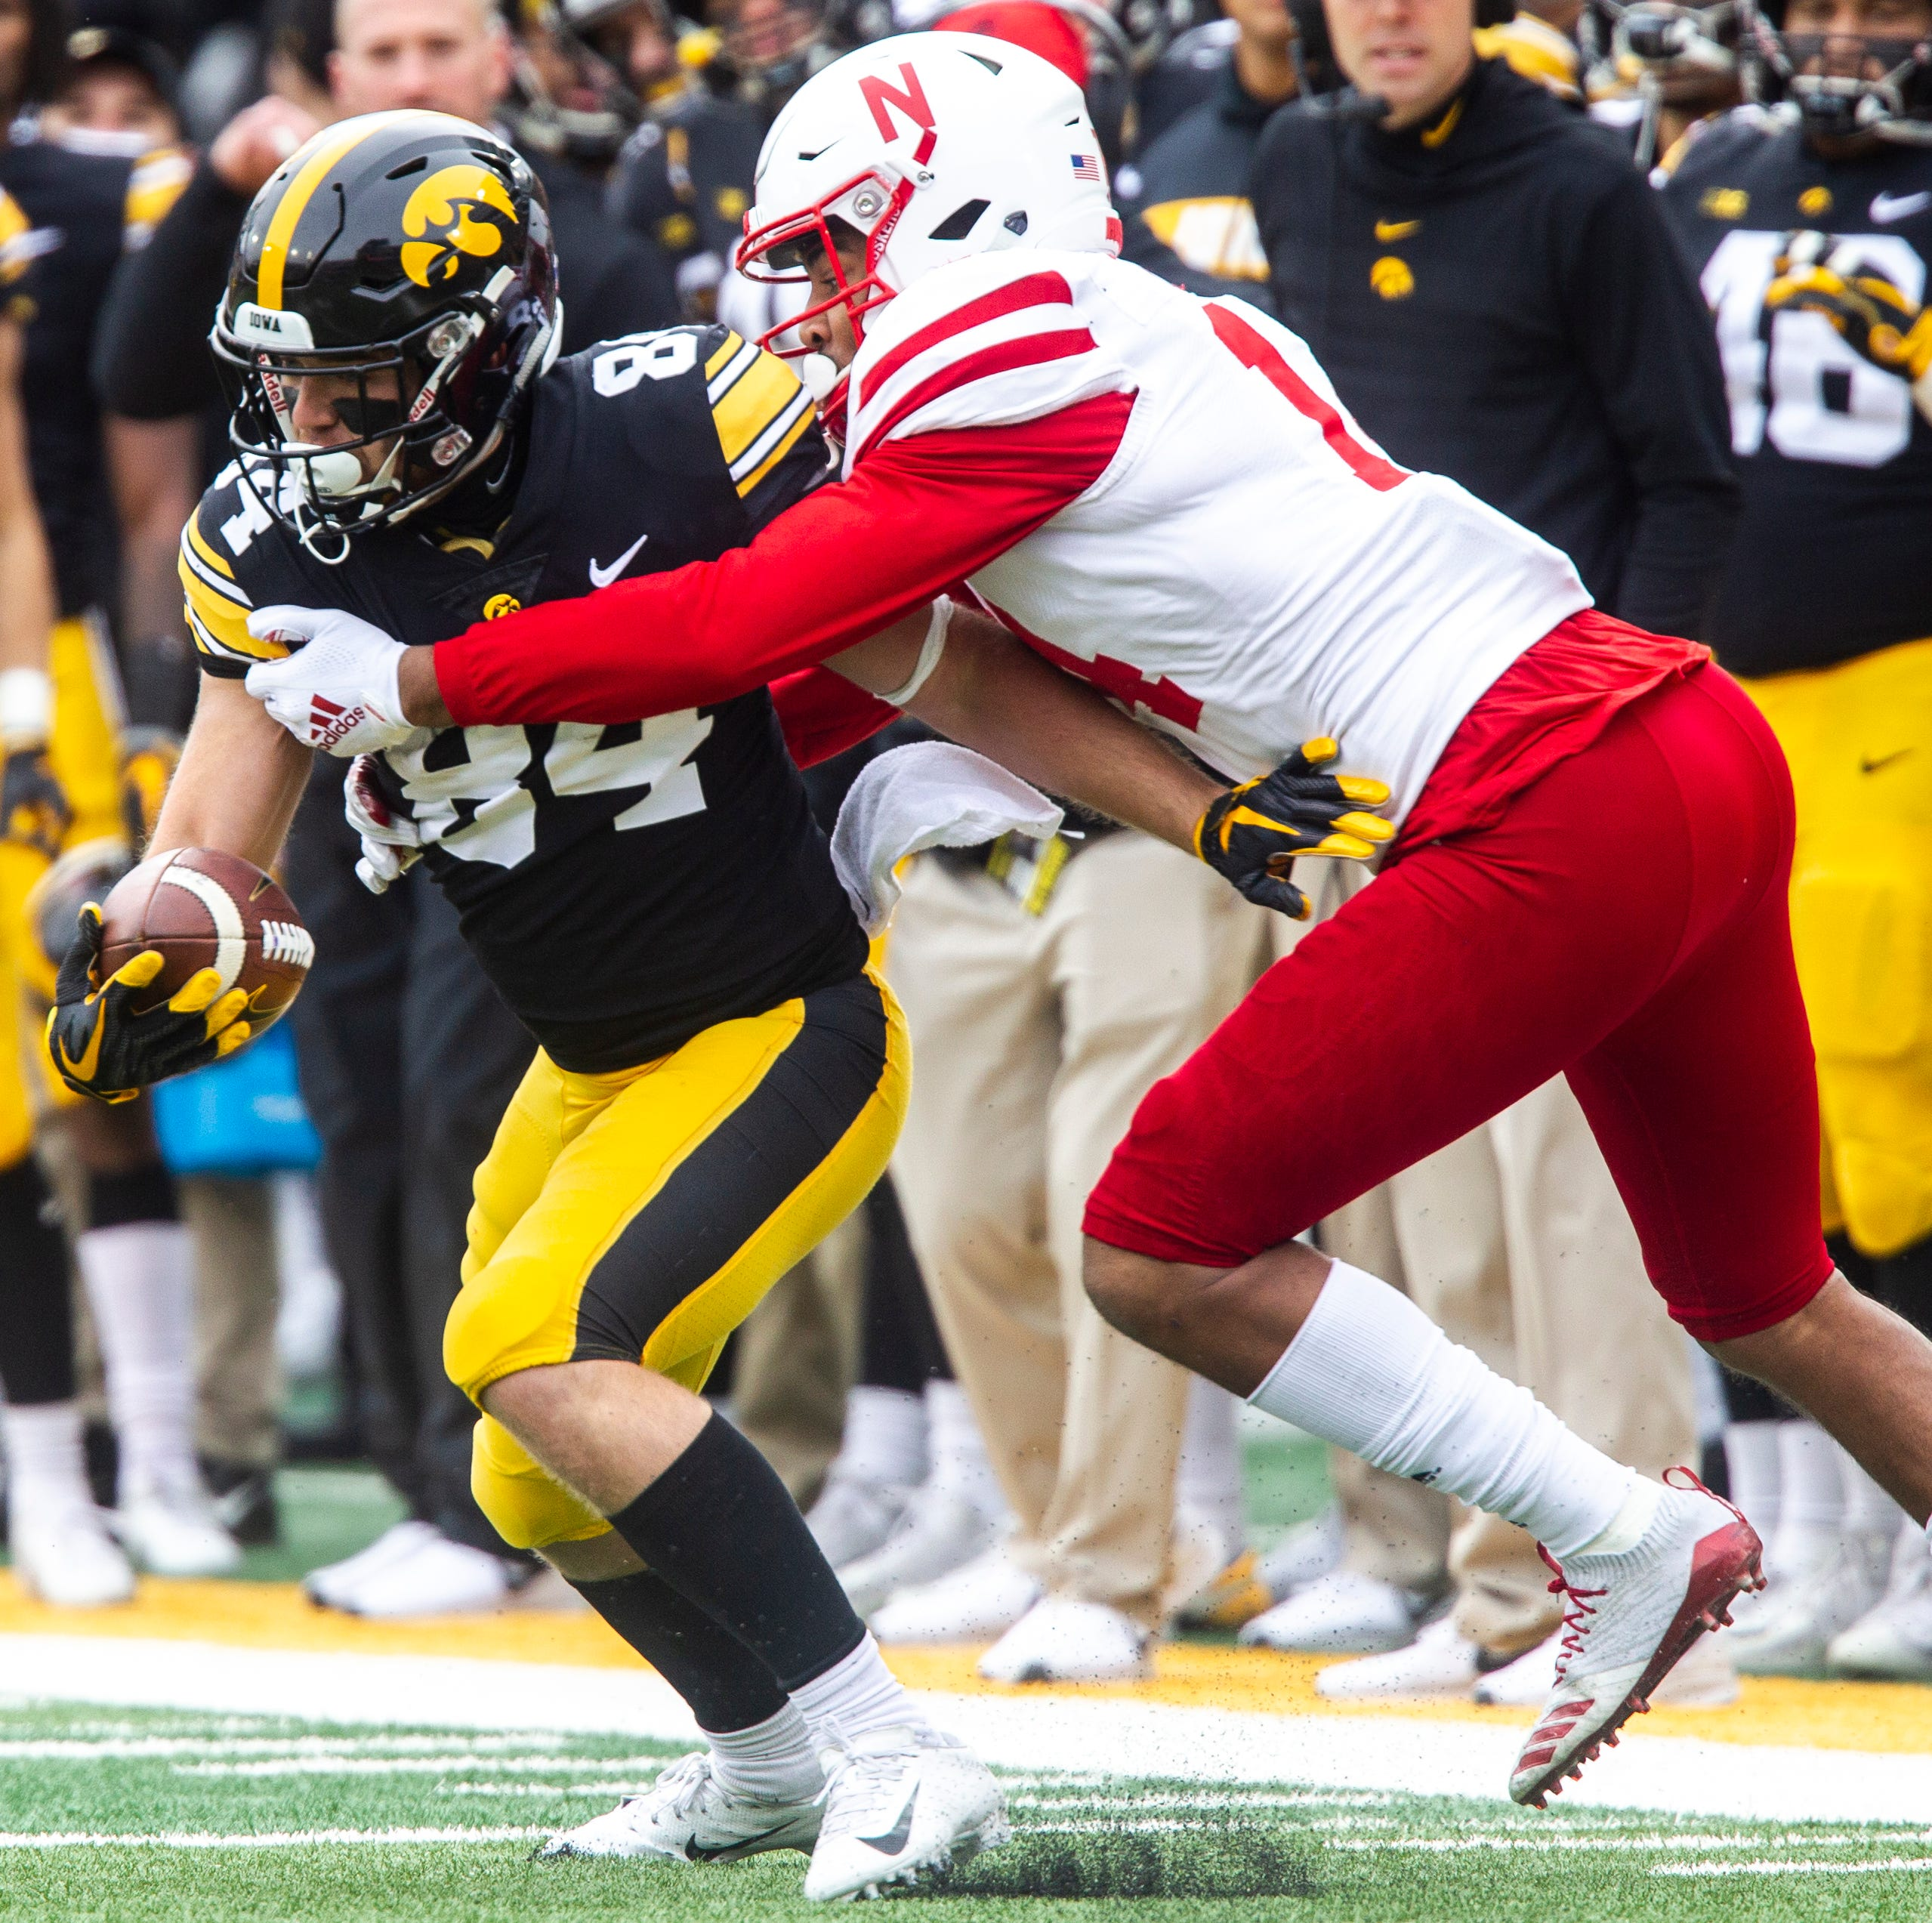 Former Hawkeyes Nick Easley, Ross Reynolds sign priority free-agent deals